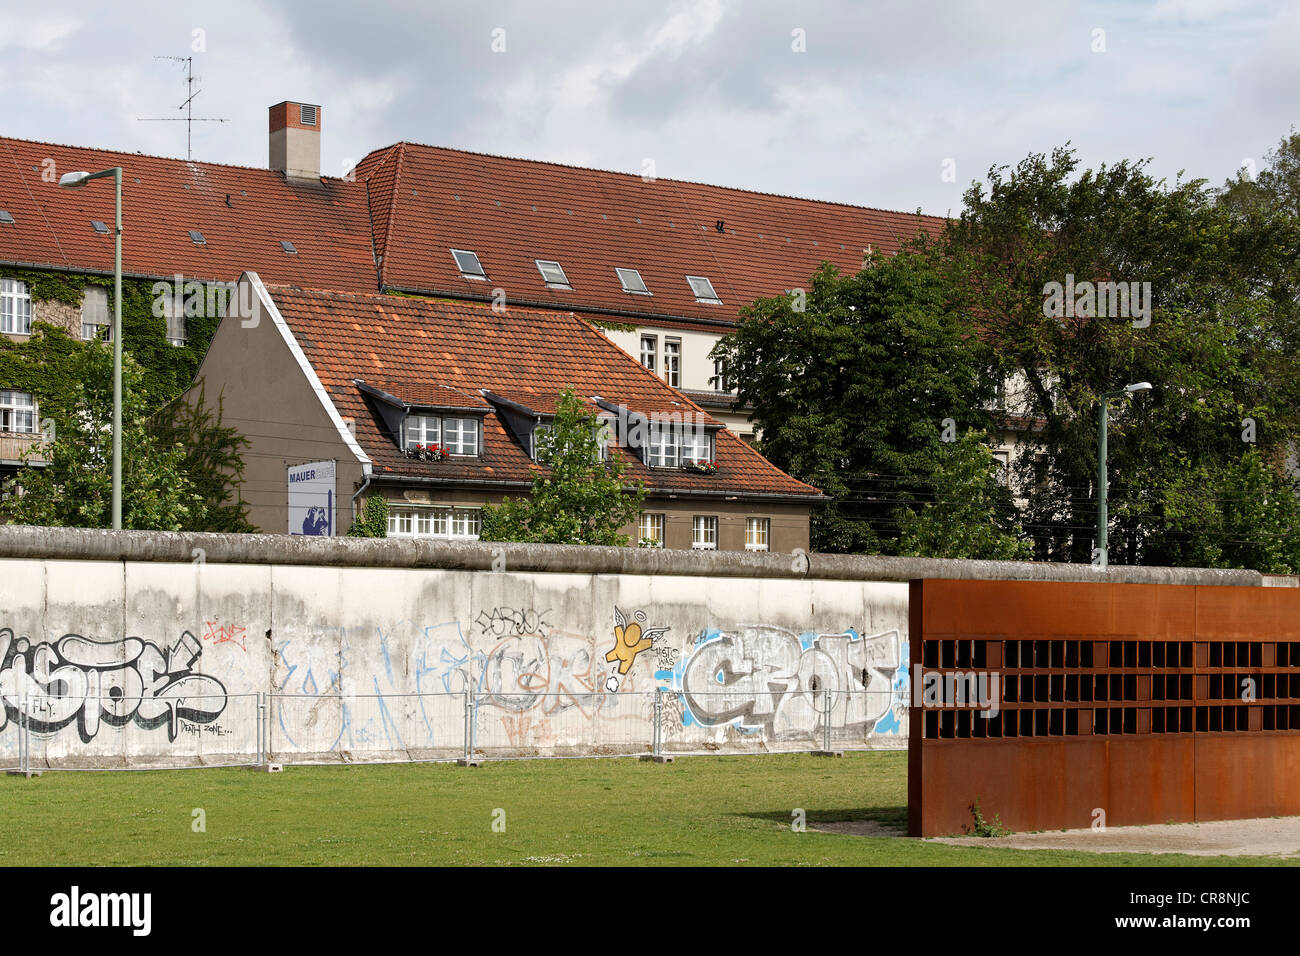 'Fenster des Gedenkens', 'Window of Remembrance' for victims of the Berlin Wall Memorial, Bernauer - Stock Image